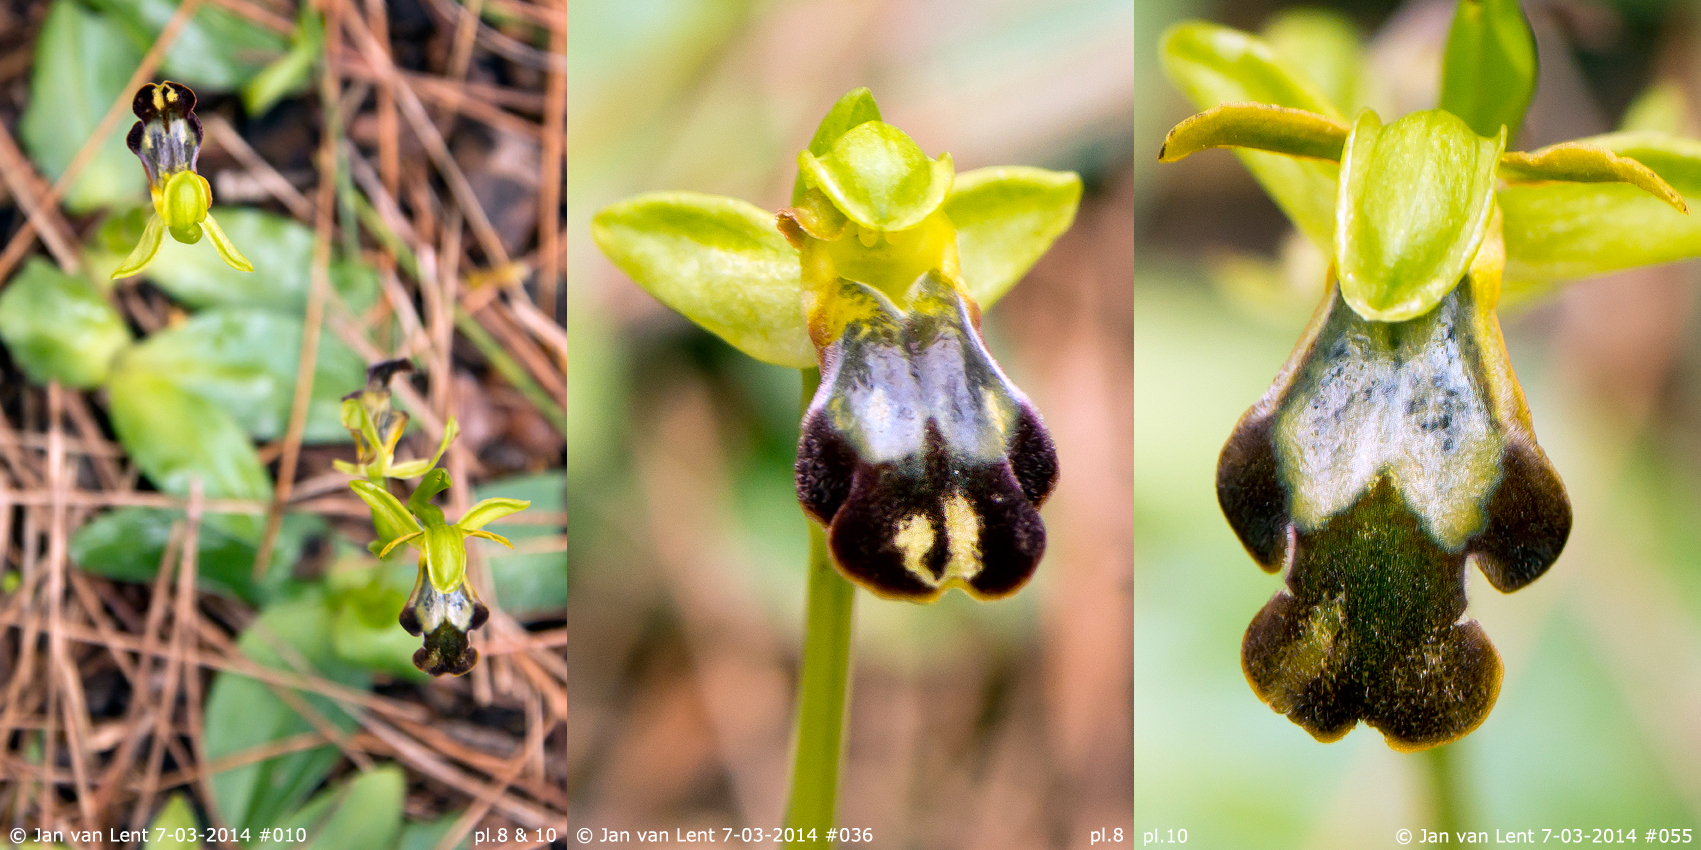 © Jan van Lent, the 2 surviving plants on 7-03-2014: pl.8 Ophrys leucadica & pl.10 Ophrys lindia.